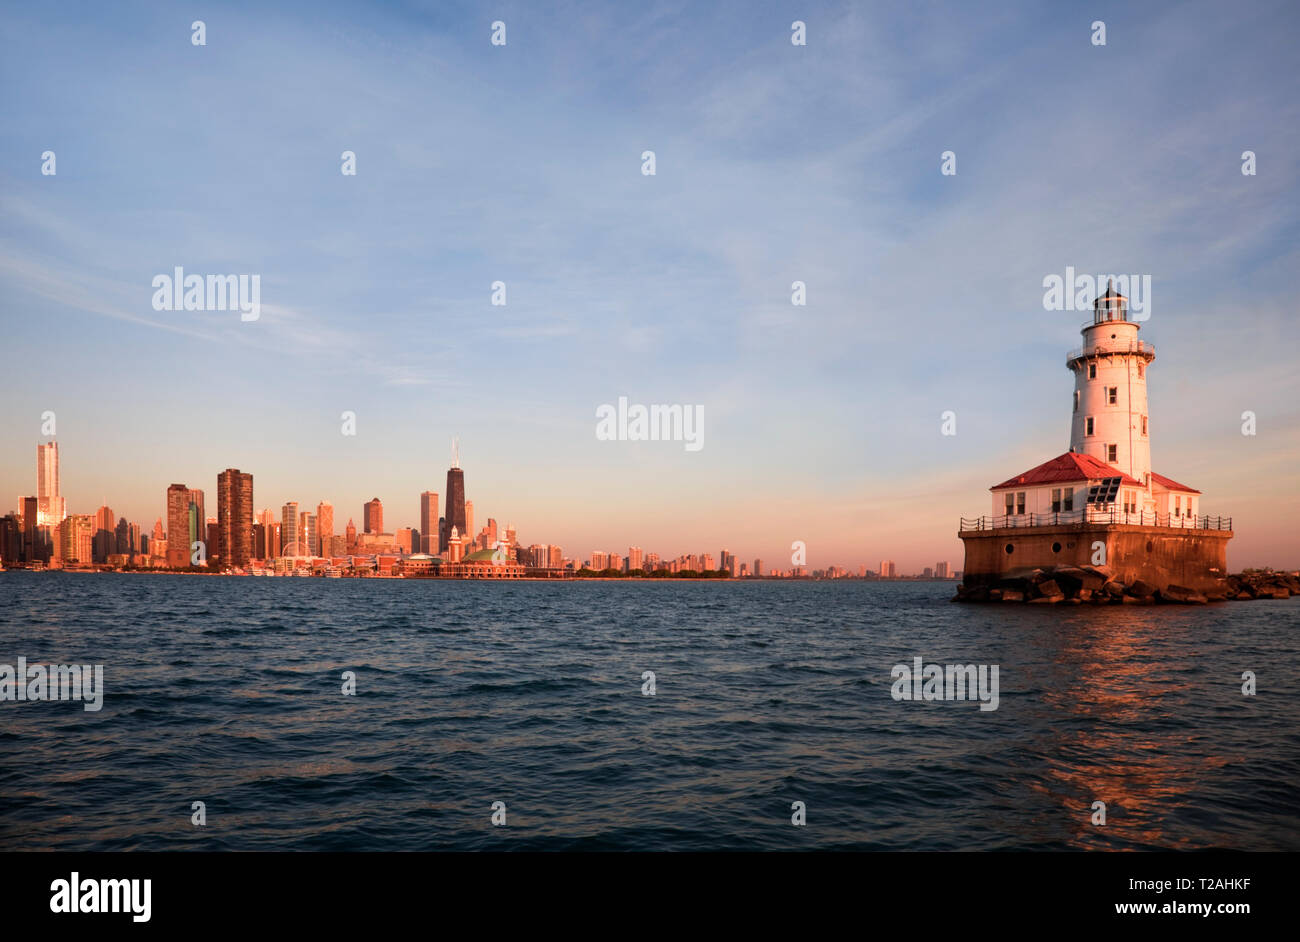 Chicago Harbor Lighthouse at sunrise in Chicago, Illinois, USA - Stock Image